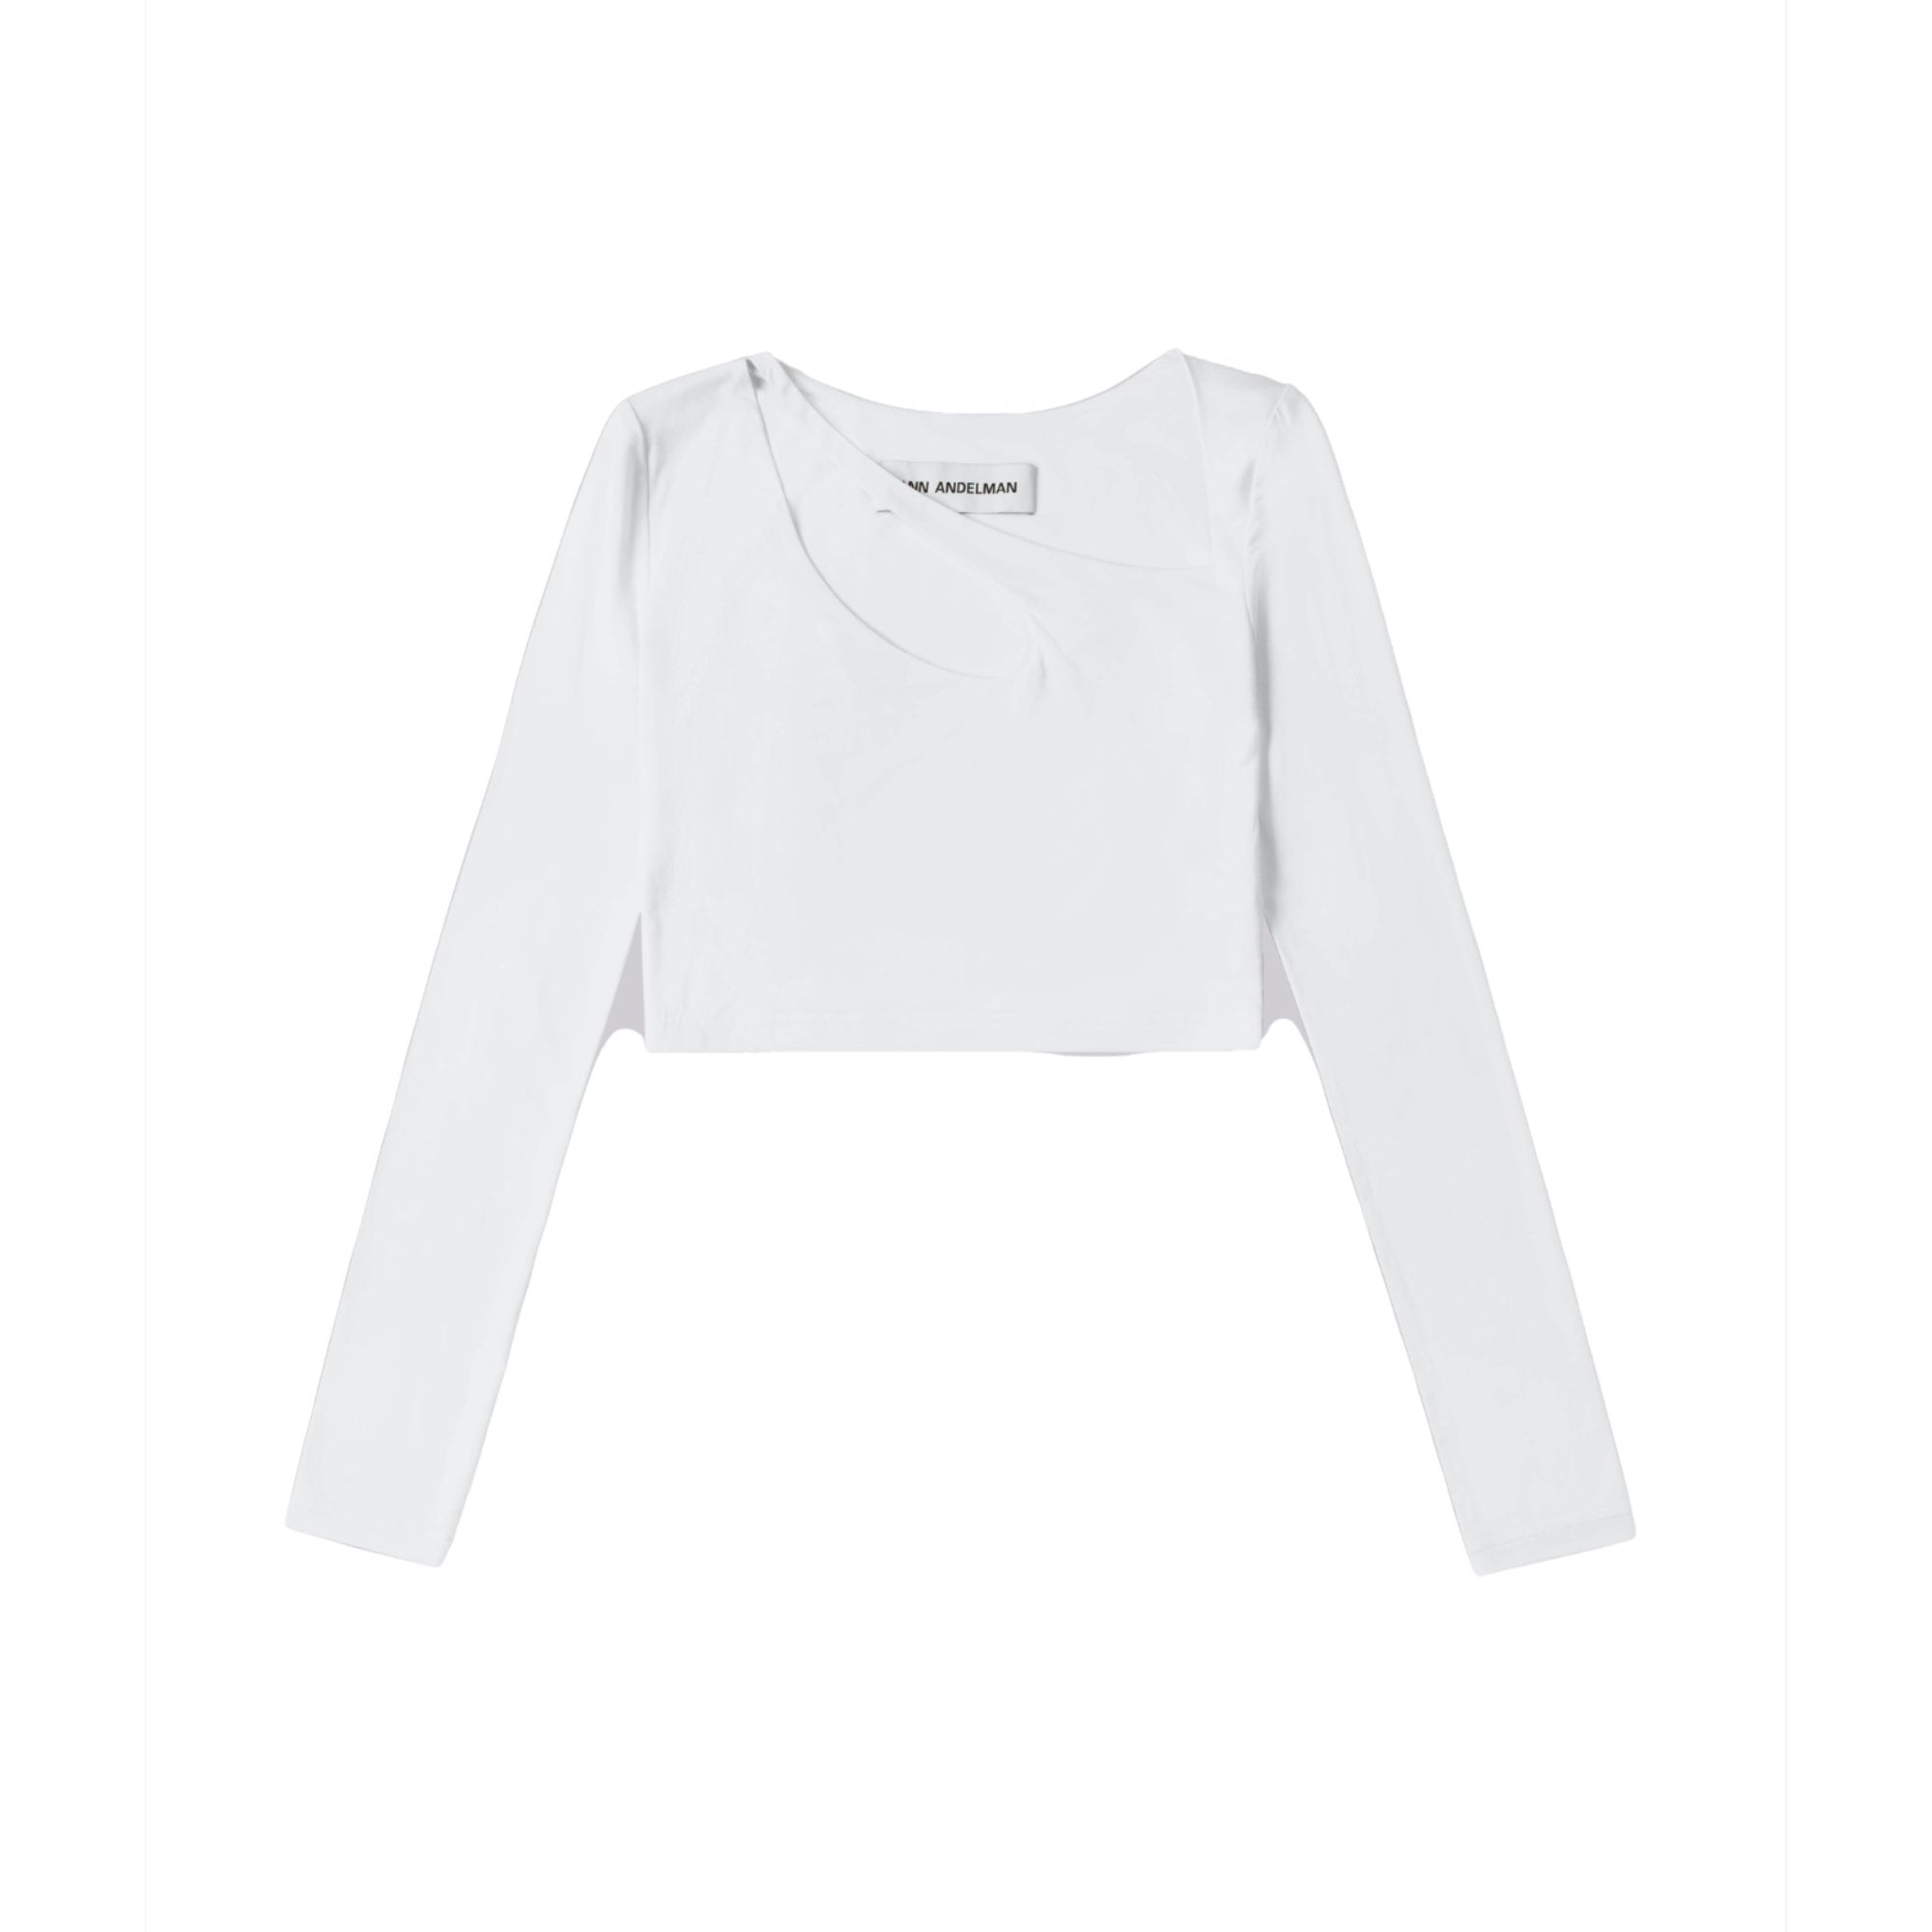 ANN ANDELMAN White U-Neck Top | MADA IN CHINA